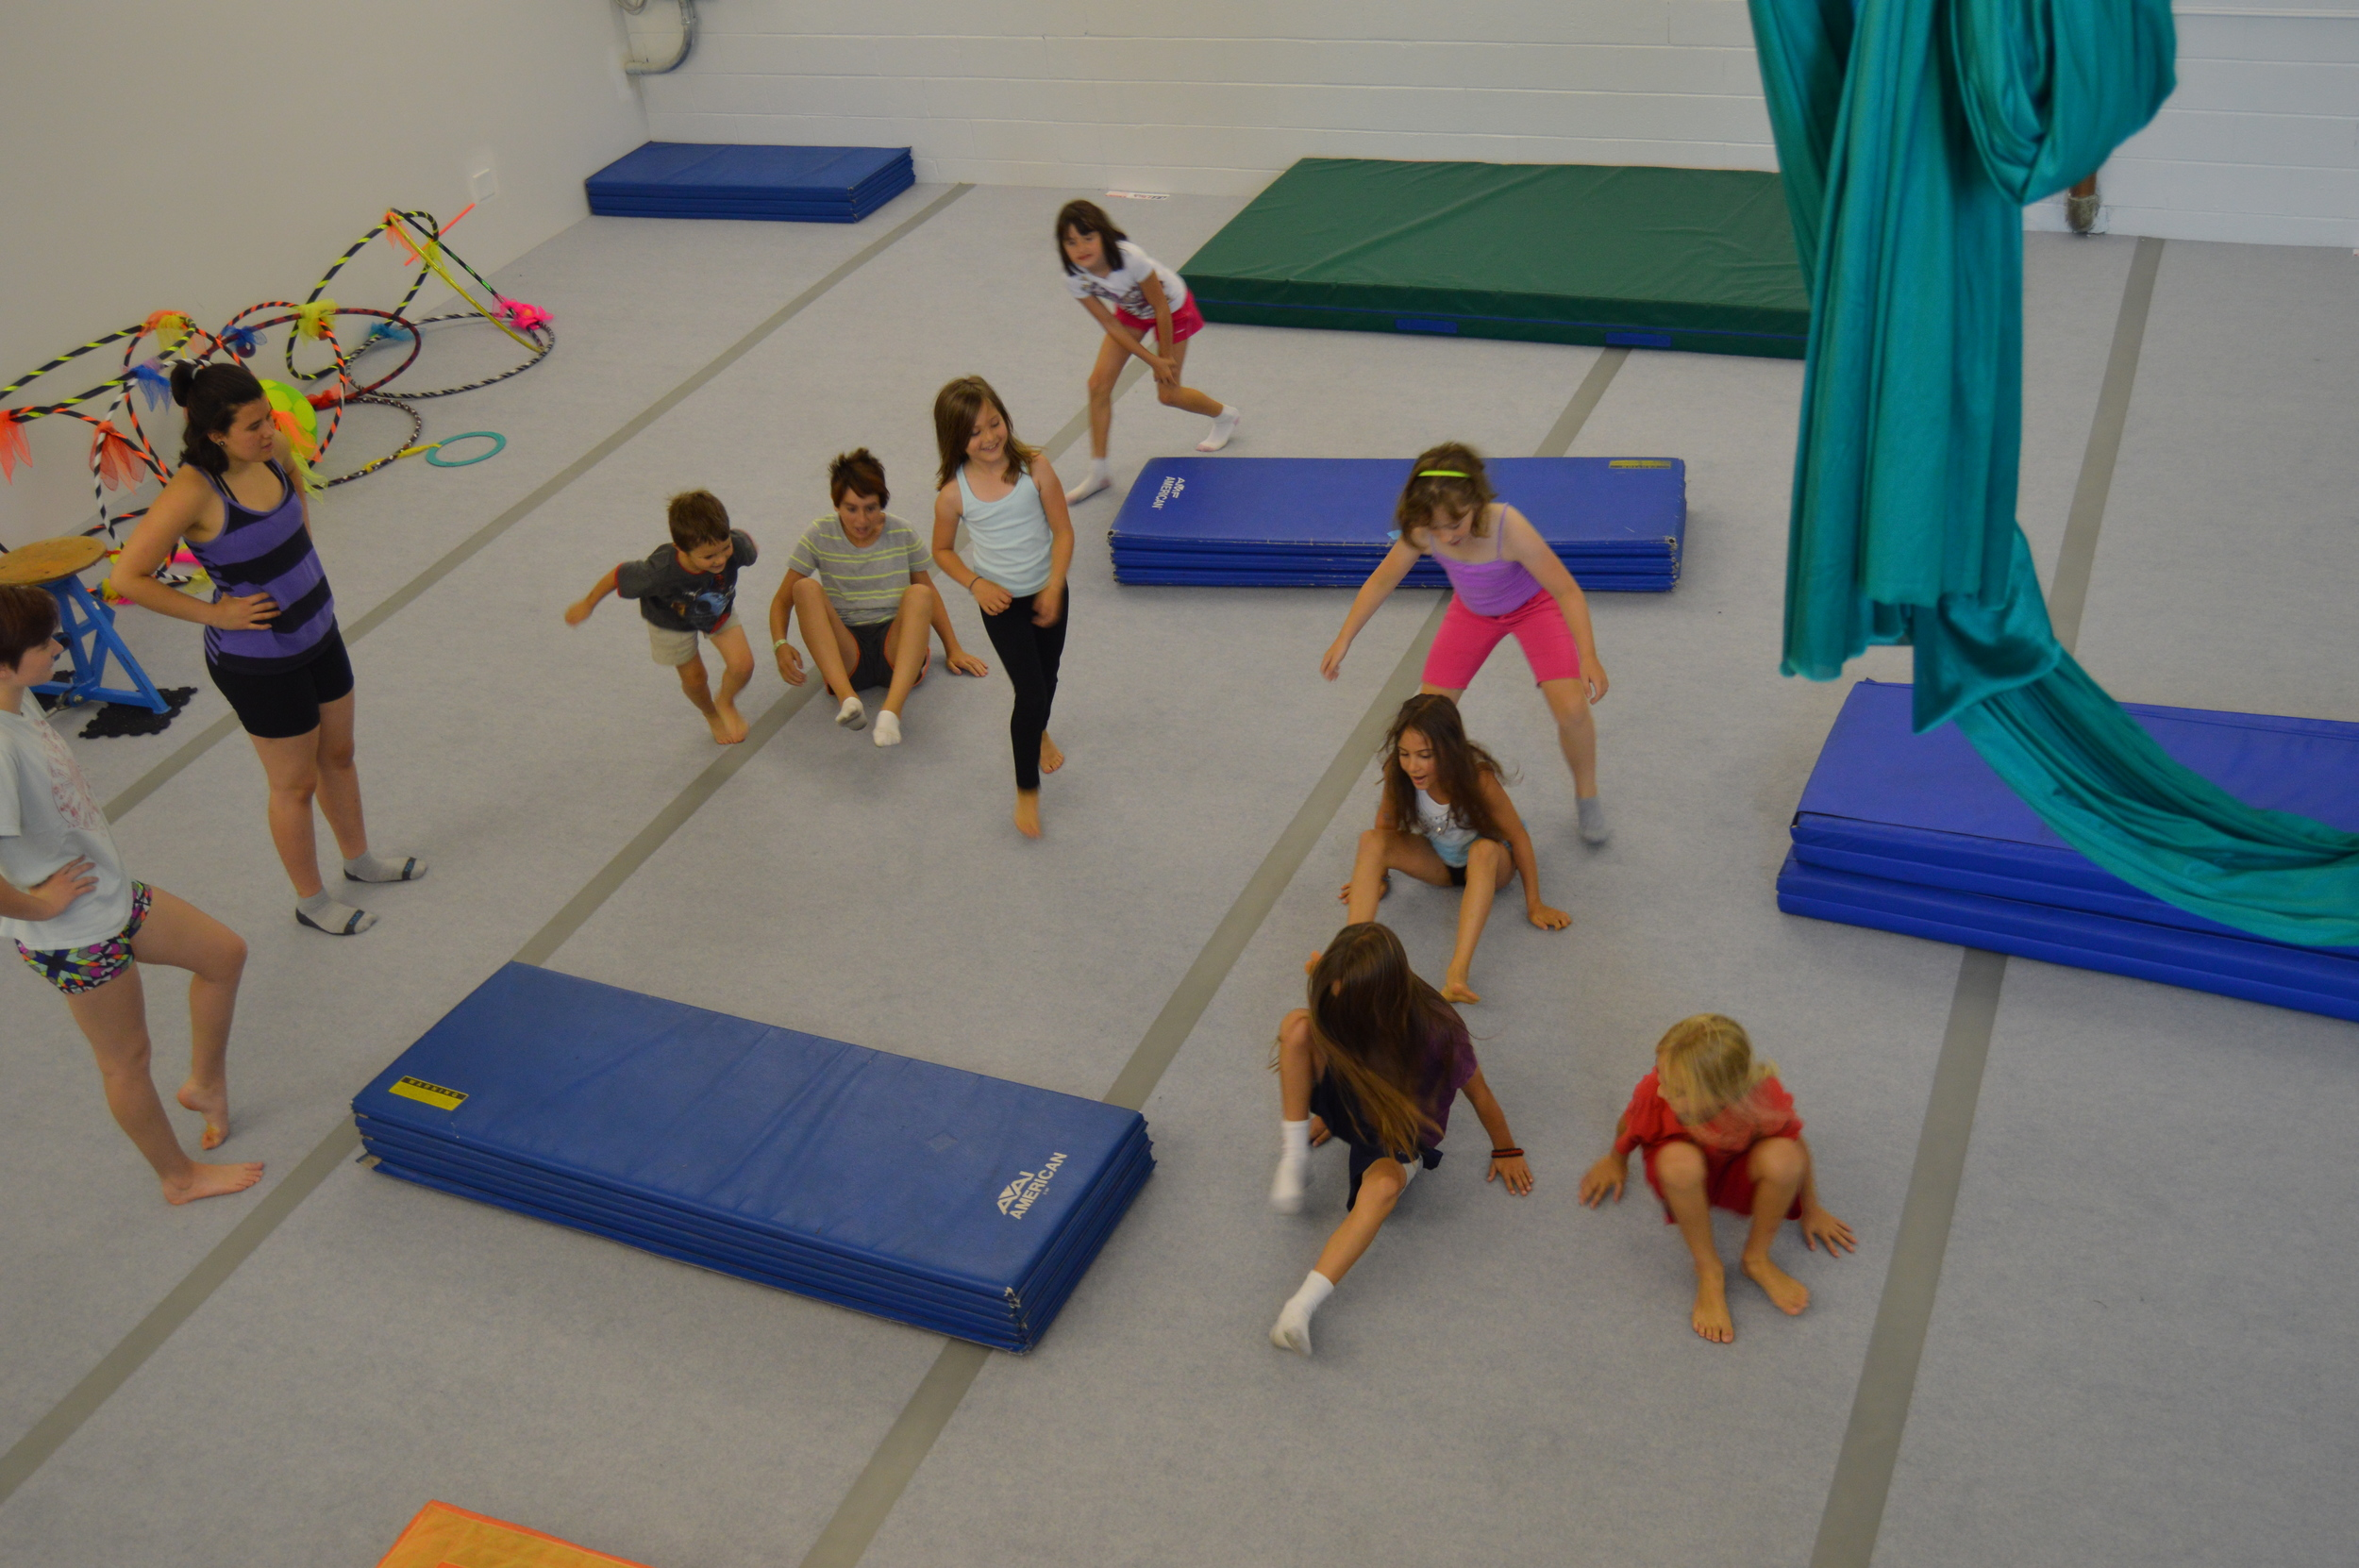 Come check out our awesome space - fully equipped with mats, aerial equipment, and circus props galore!